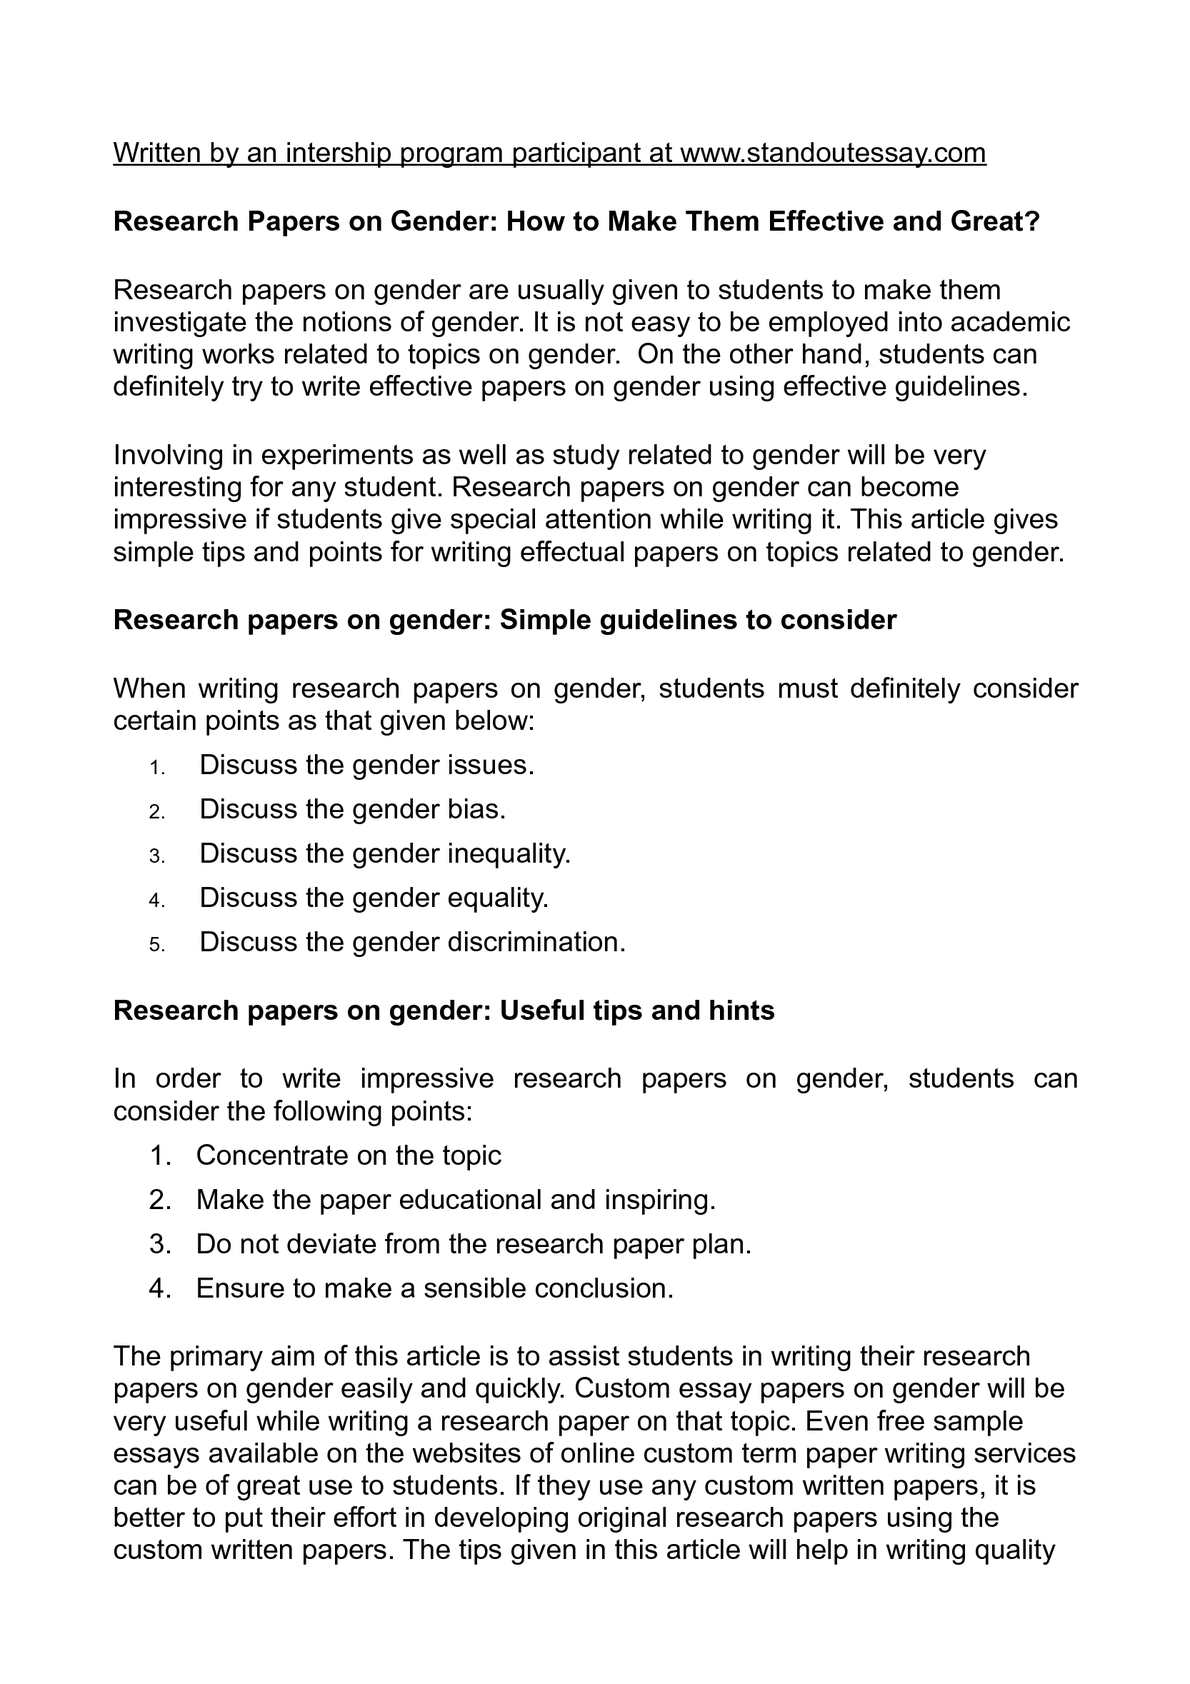 Gender discrimination research papers dissertation geographic location